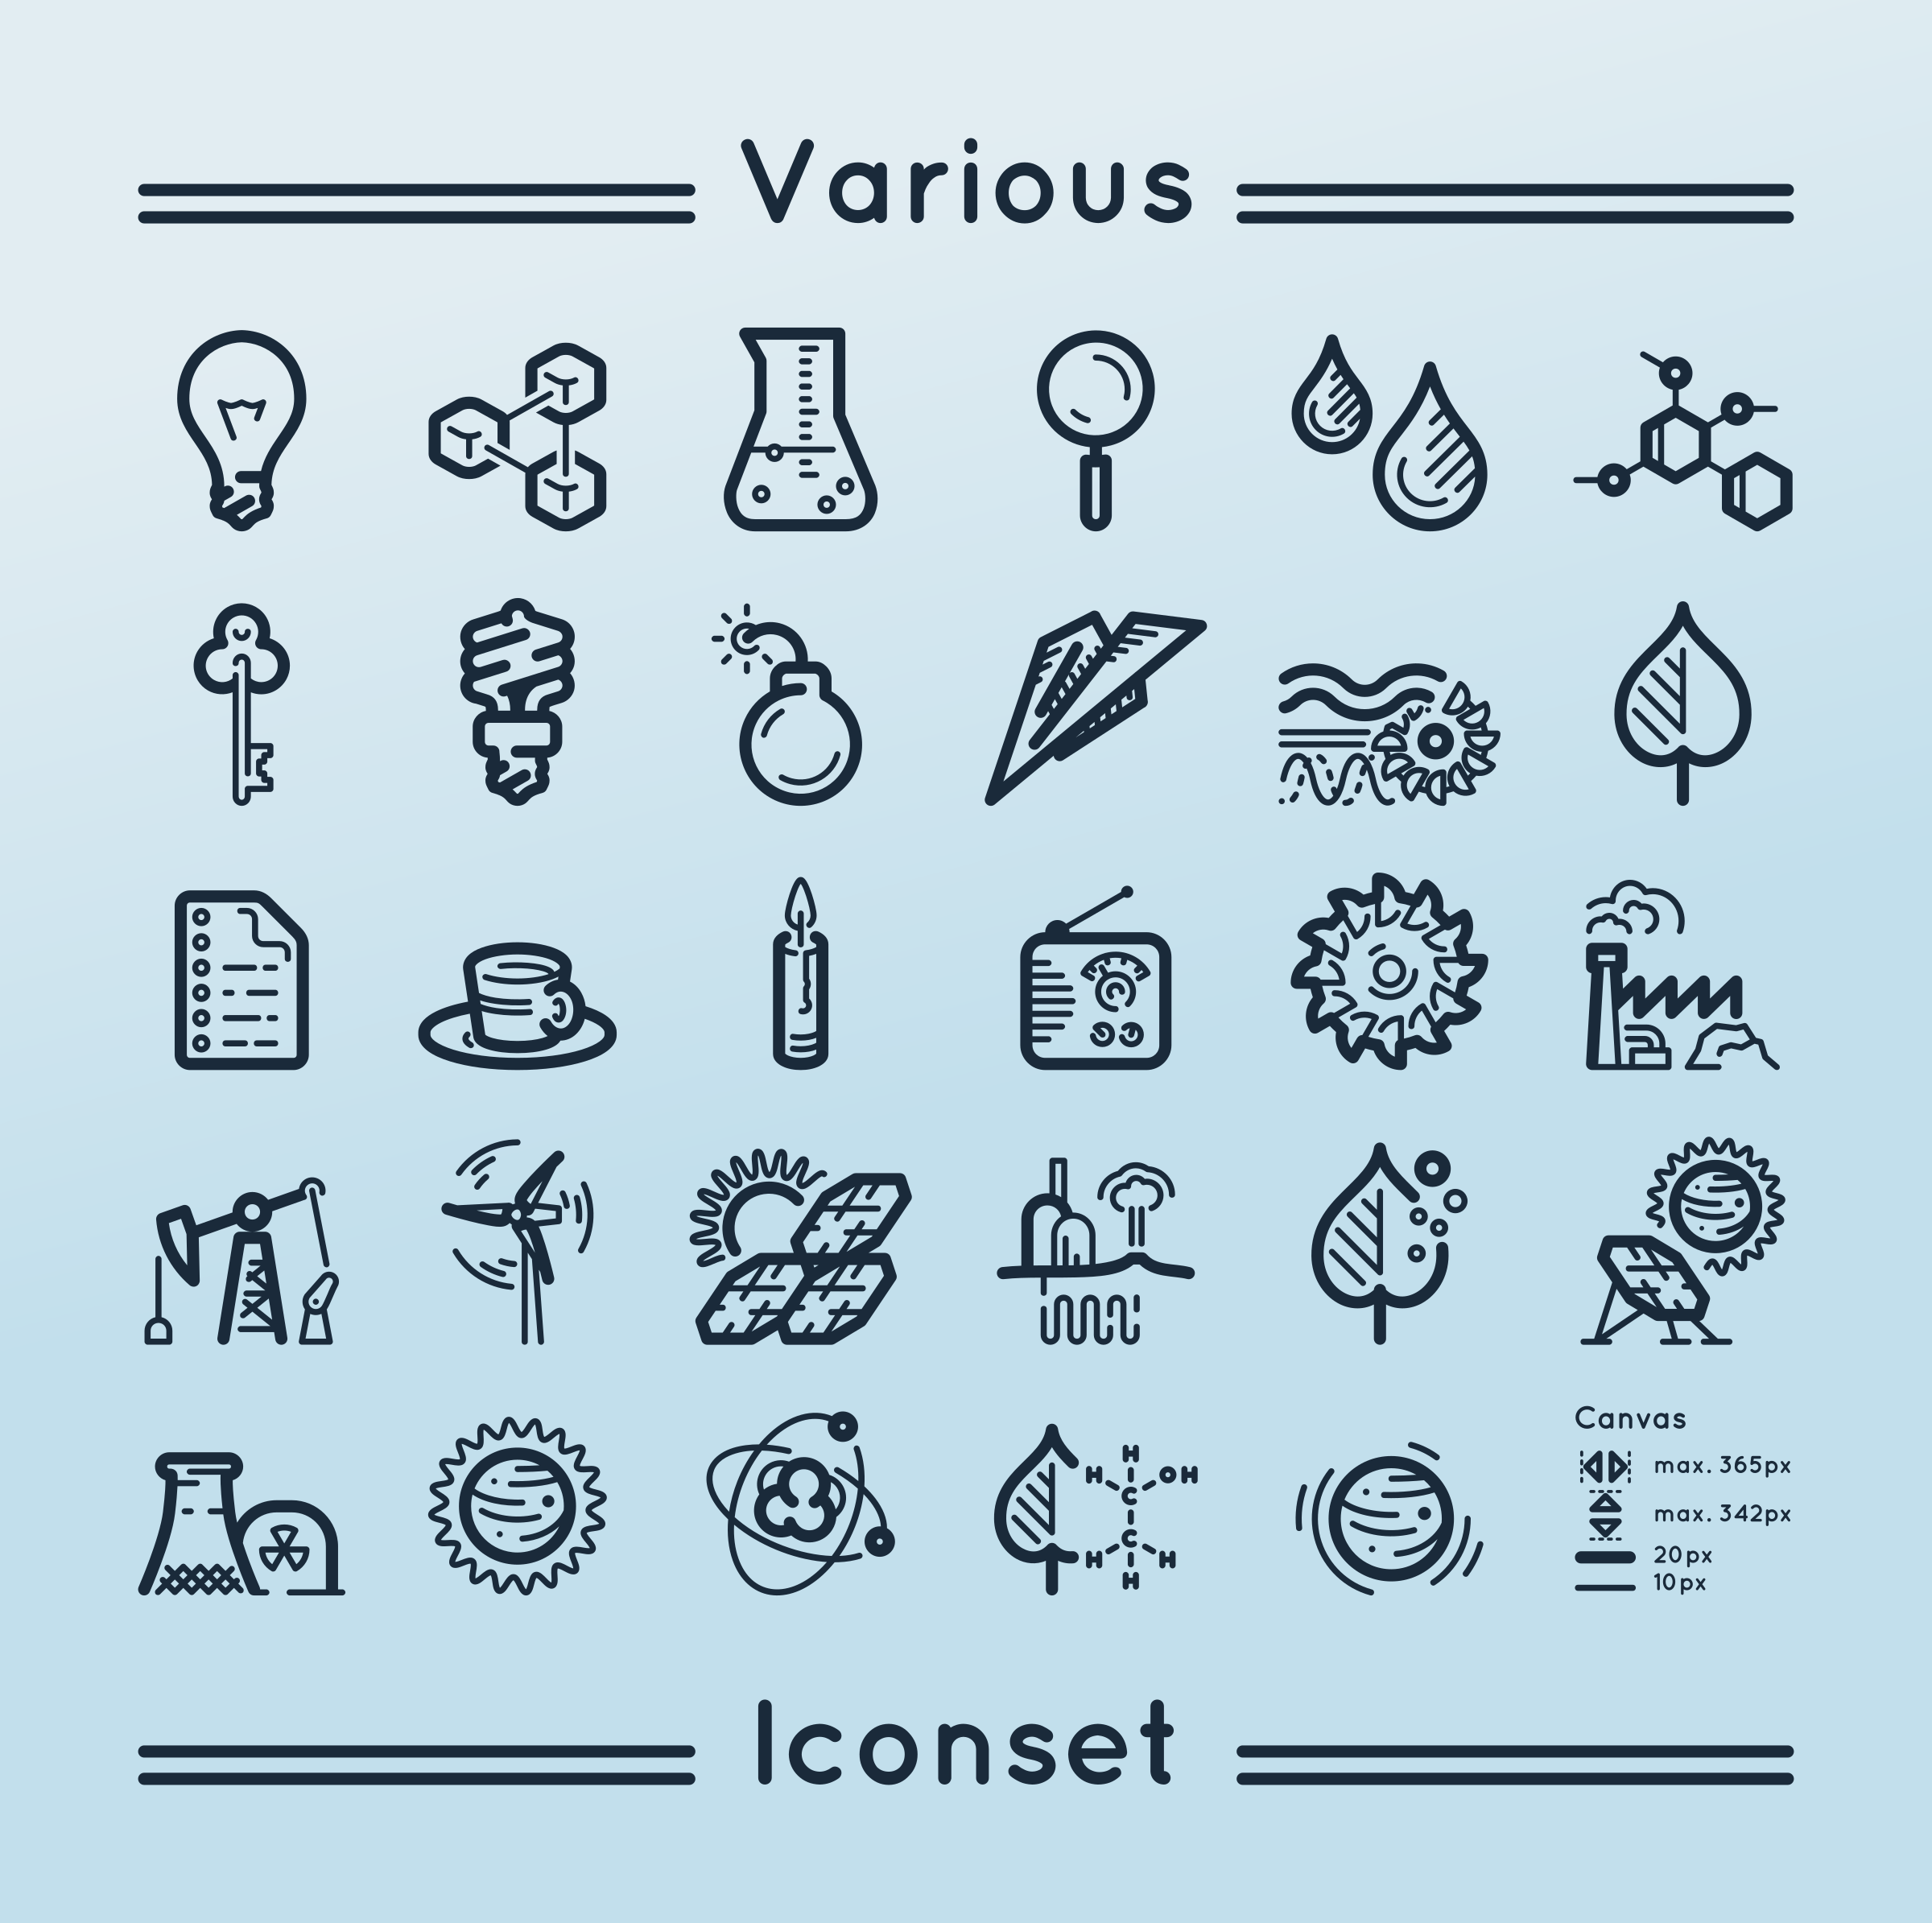 Various iconset 2 by m1981